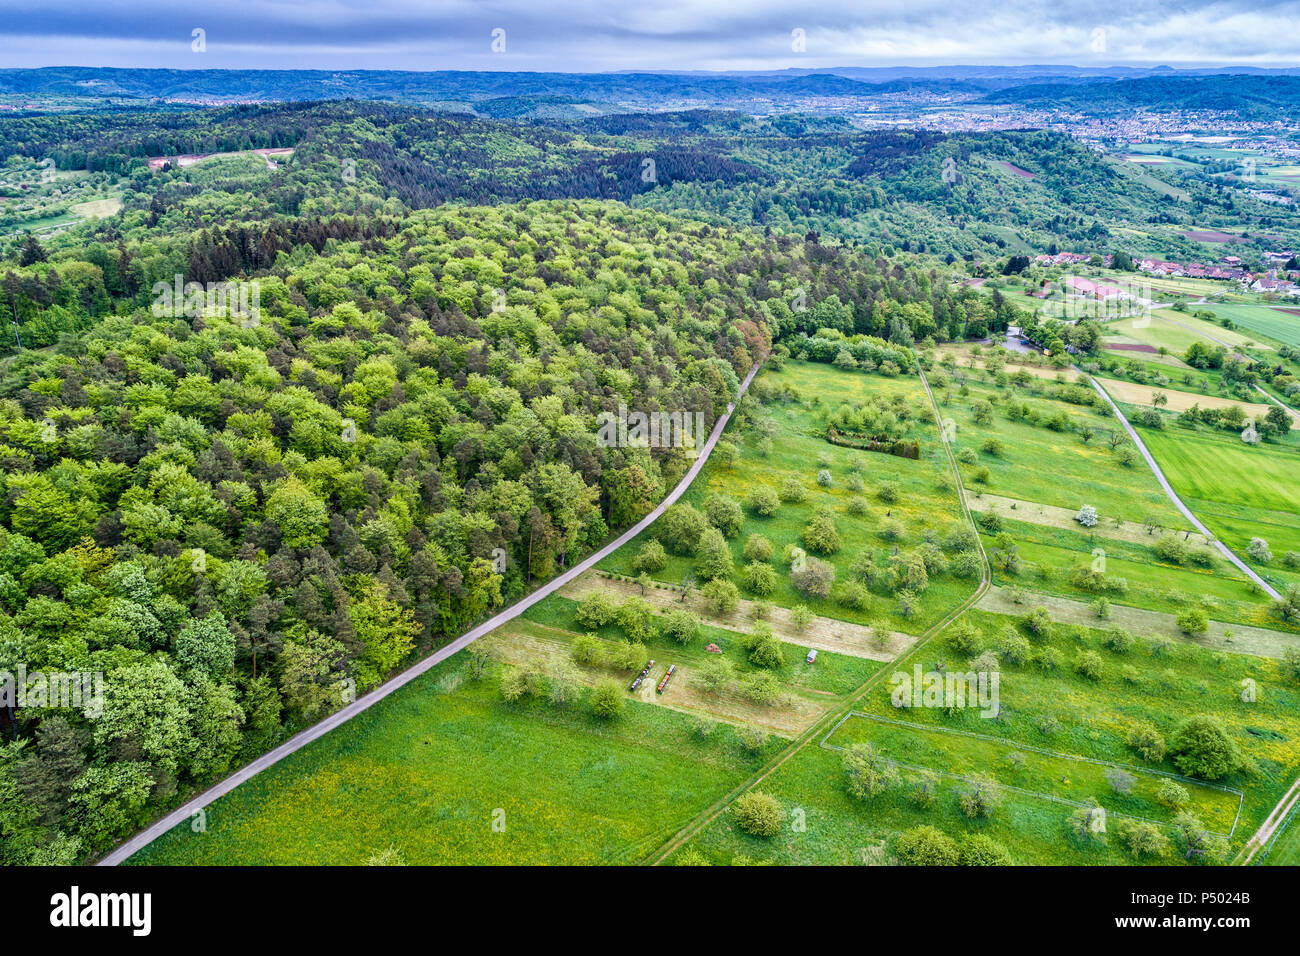 Germany, Baden-Wuerttemberg, Swabian Franconian forest, Rems-Murr-Kreis, Aerial view of meadow with scattered fruit trees and roads - Stock Image